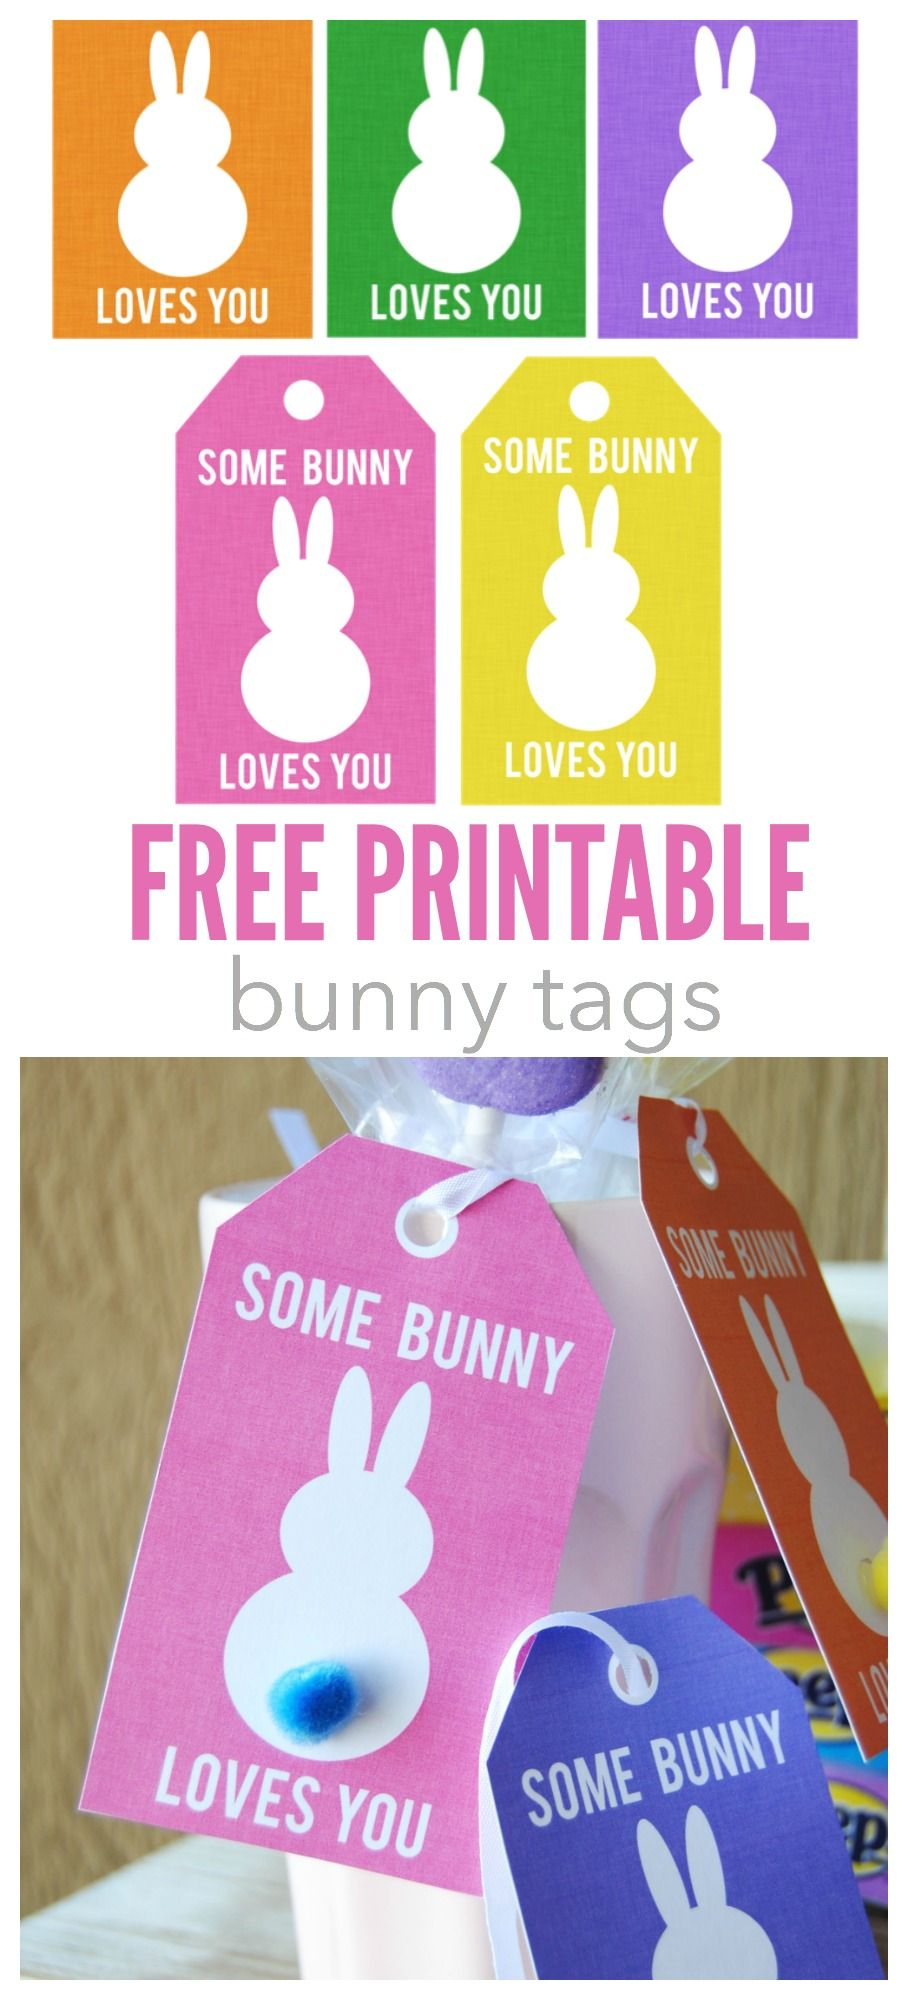 Some bunny loves you tags free printable bunny tags the perfect touch for all your easter treats easter negle Gallery